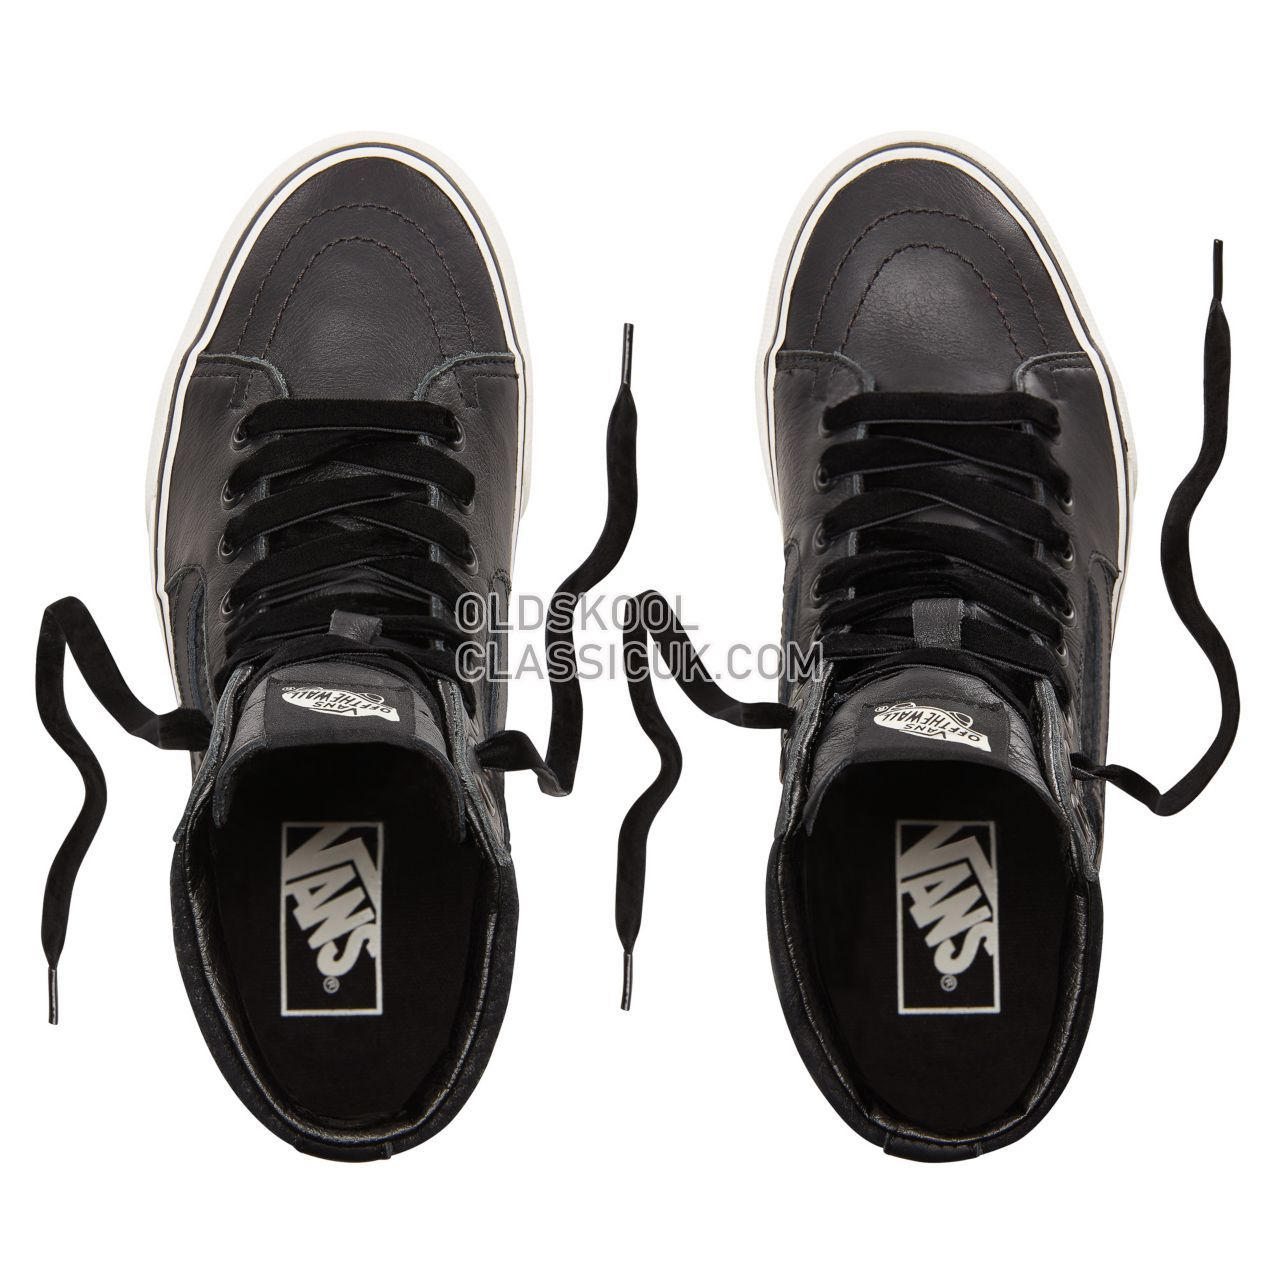 Vans Leather Sk8-Hi Platform 2.0 Sneakers Womens (Leather) Snake/Black VN0A3TKNUQF Shoes